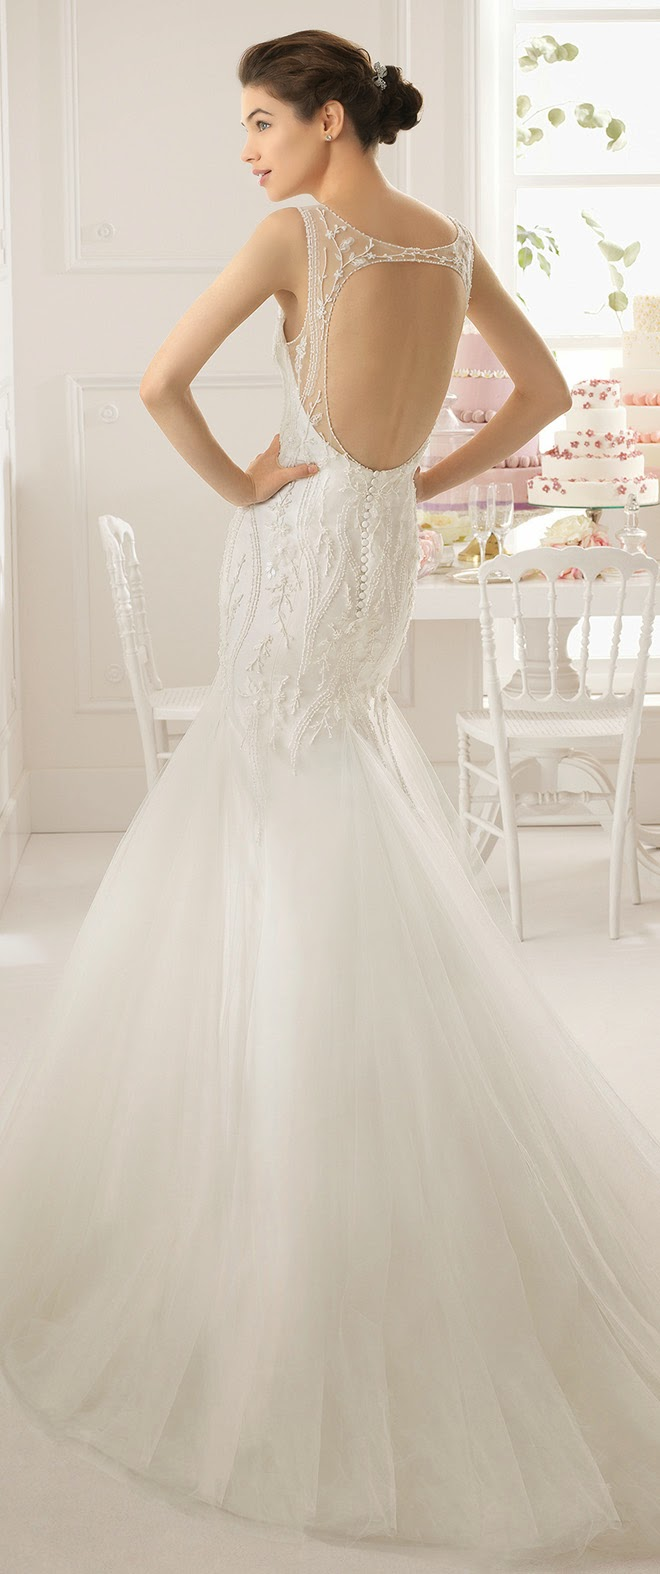 Fifties Wedding Dresses 79 Cute Please contact Aire Barcelona